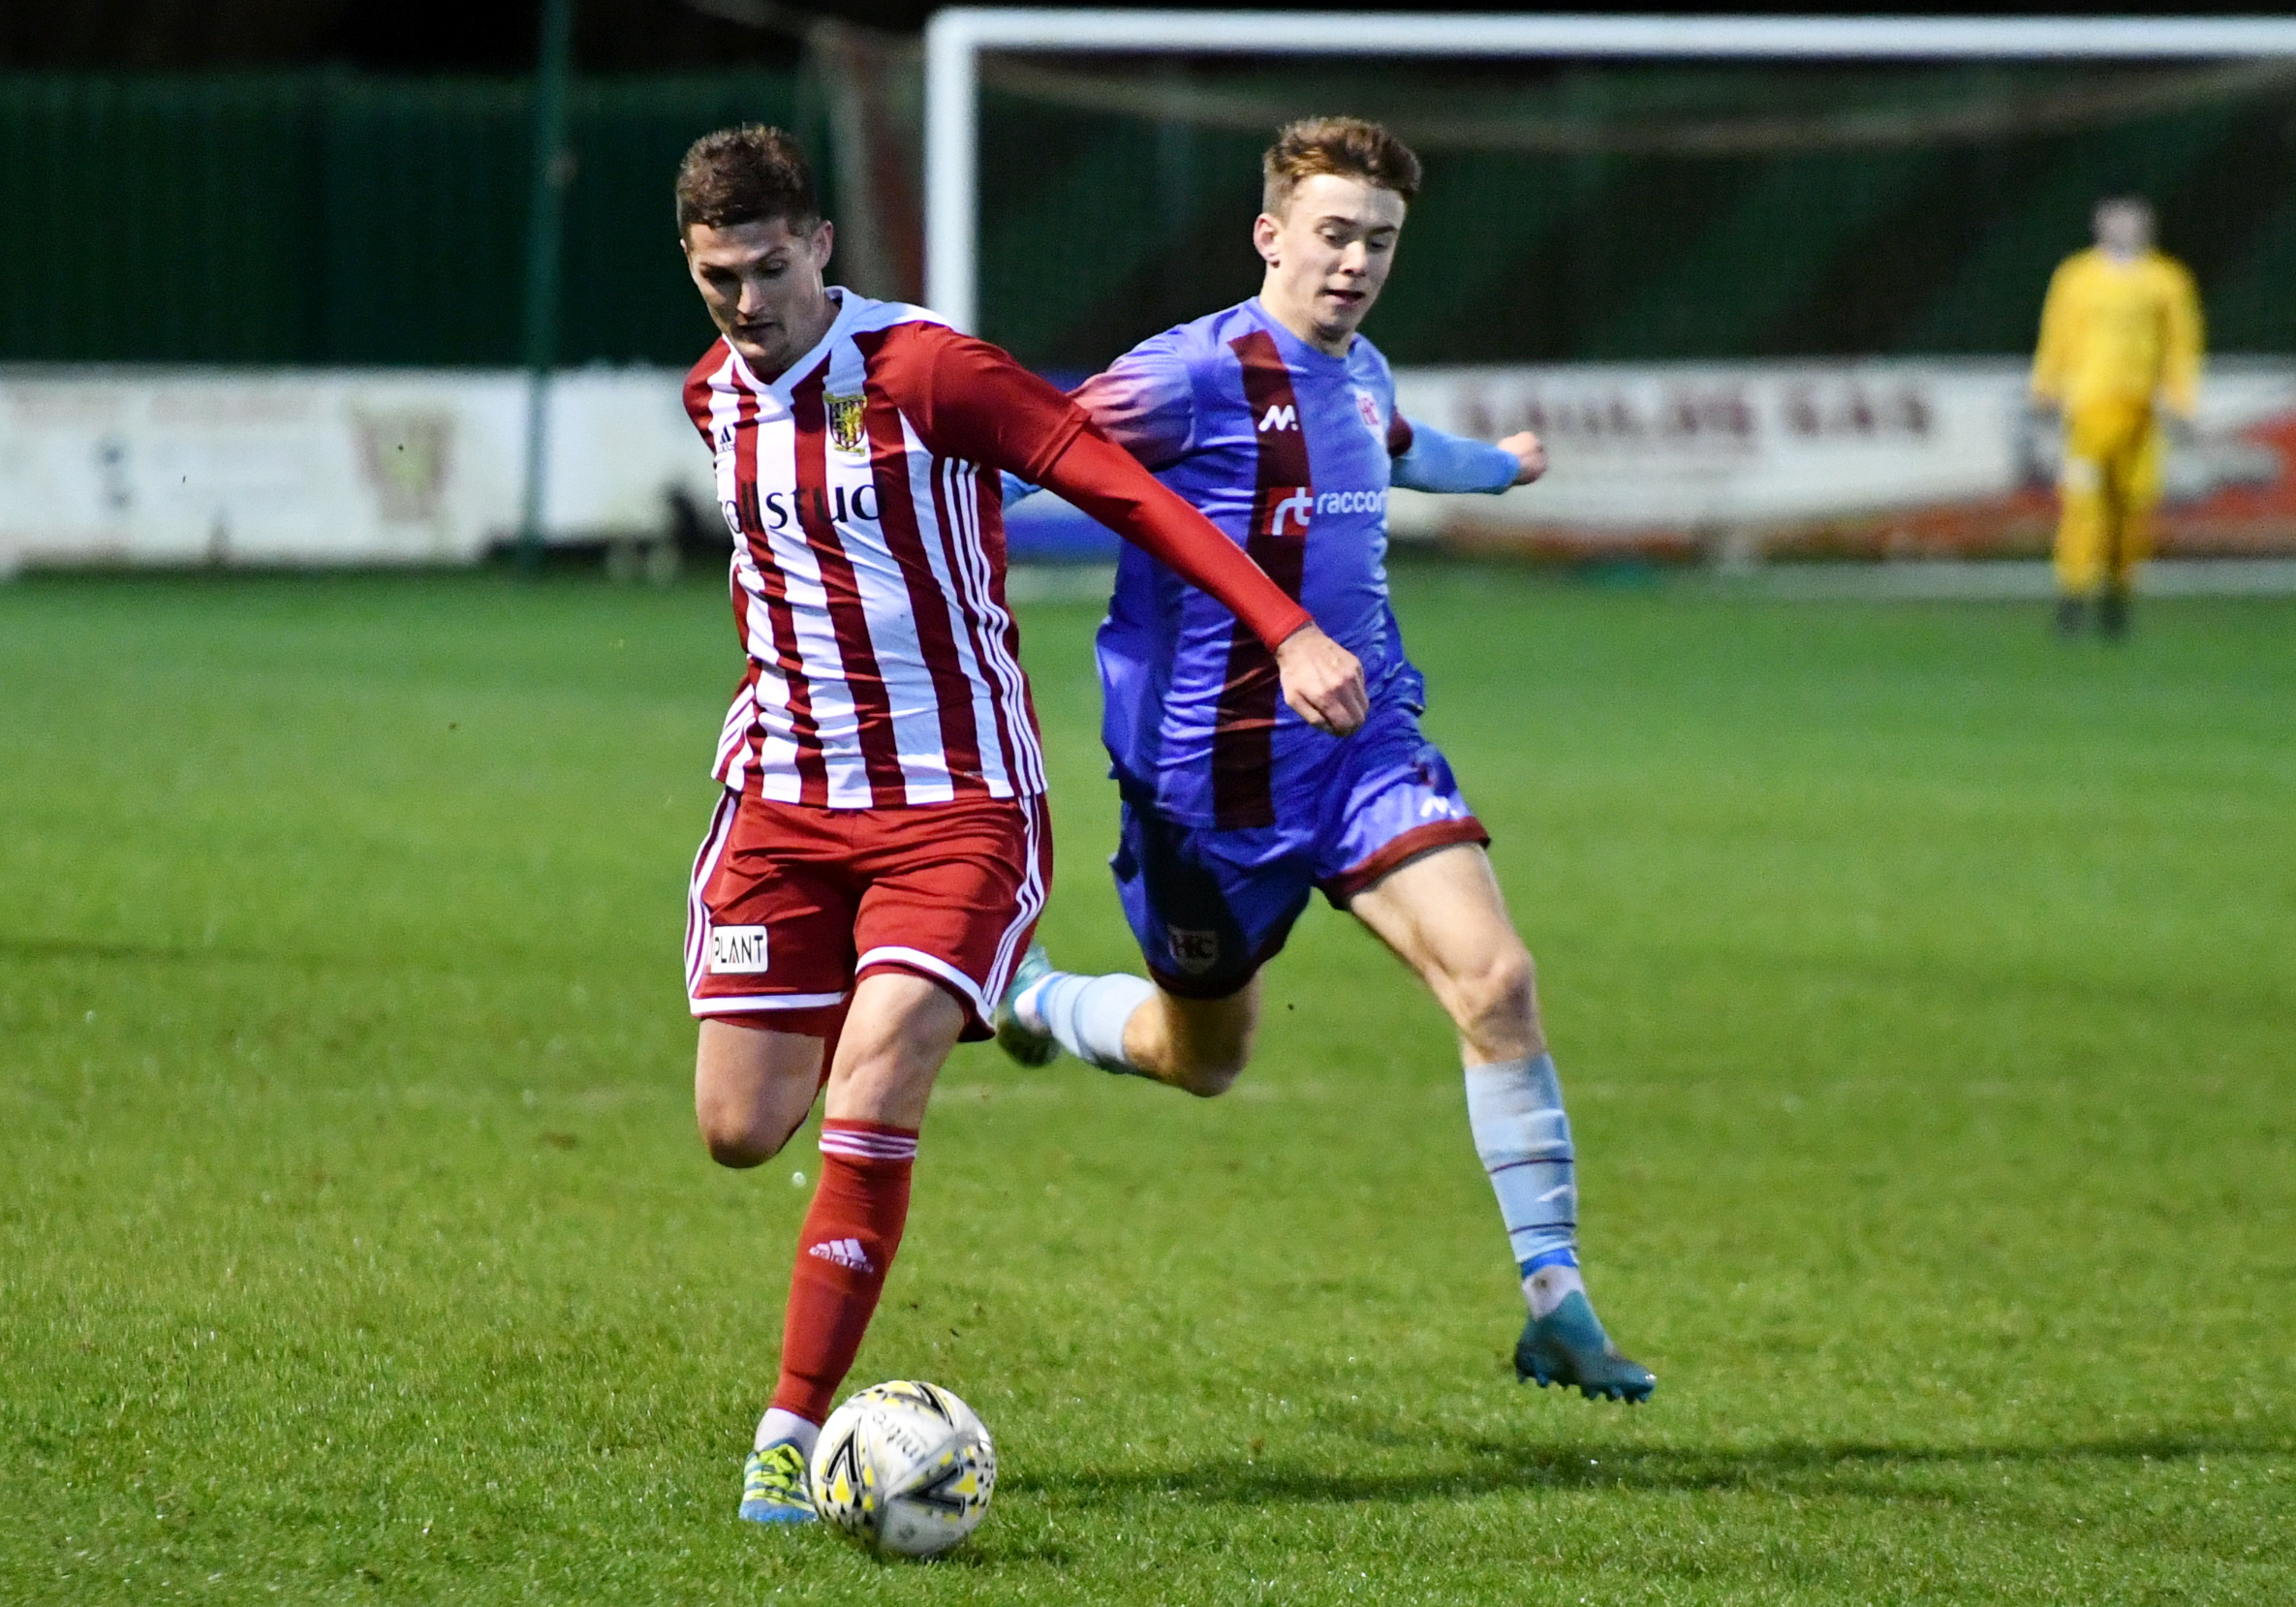 Formartine's Daniel Park, left. Picture by Chris Sumner